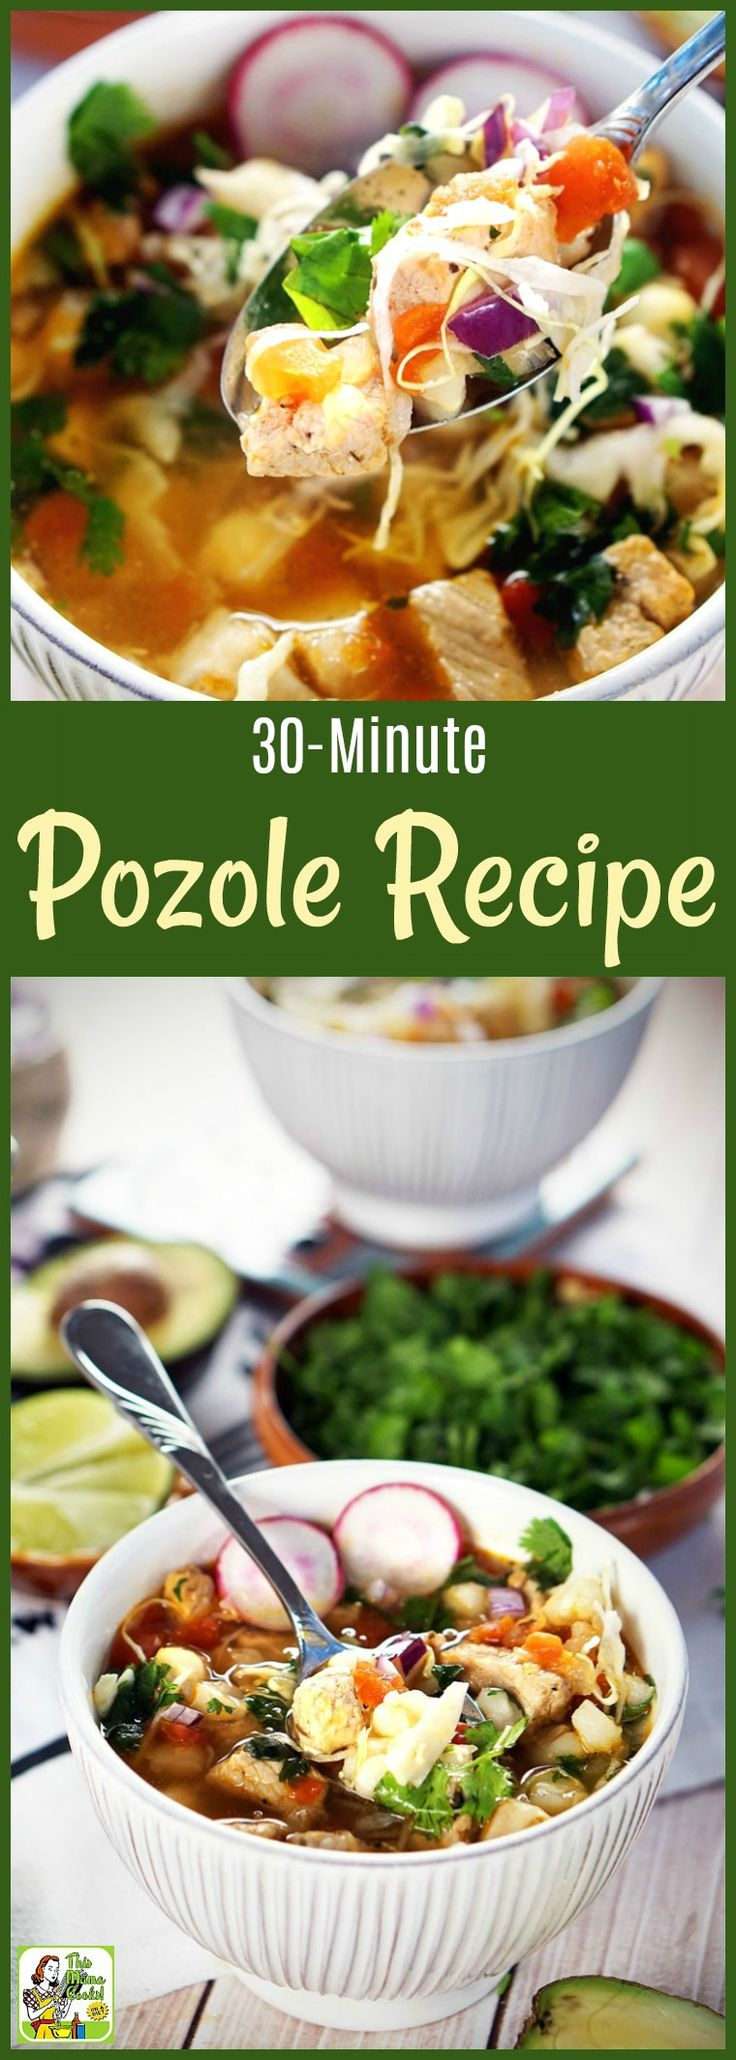 Want to know how to make pozole in less than 30 minutes? This pork pozole recipe combines pozole verde and pozole rojo. Can be made with chicken, too. #pork #soup #pozole #posole #Mexicanfood #under30 #30minutes #glutenfree #chicken